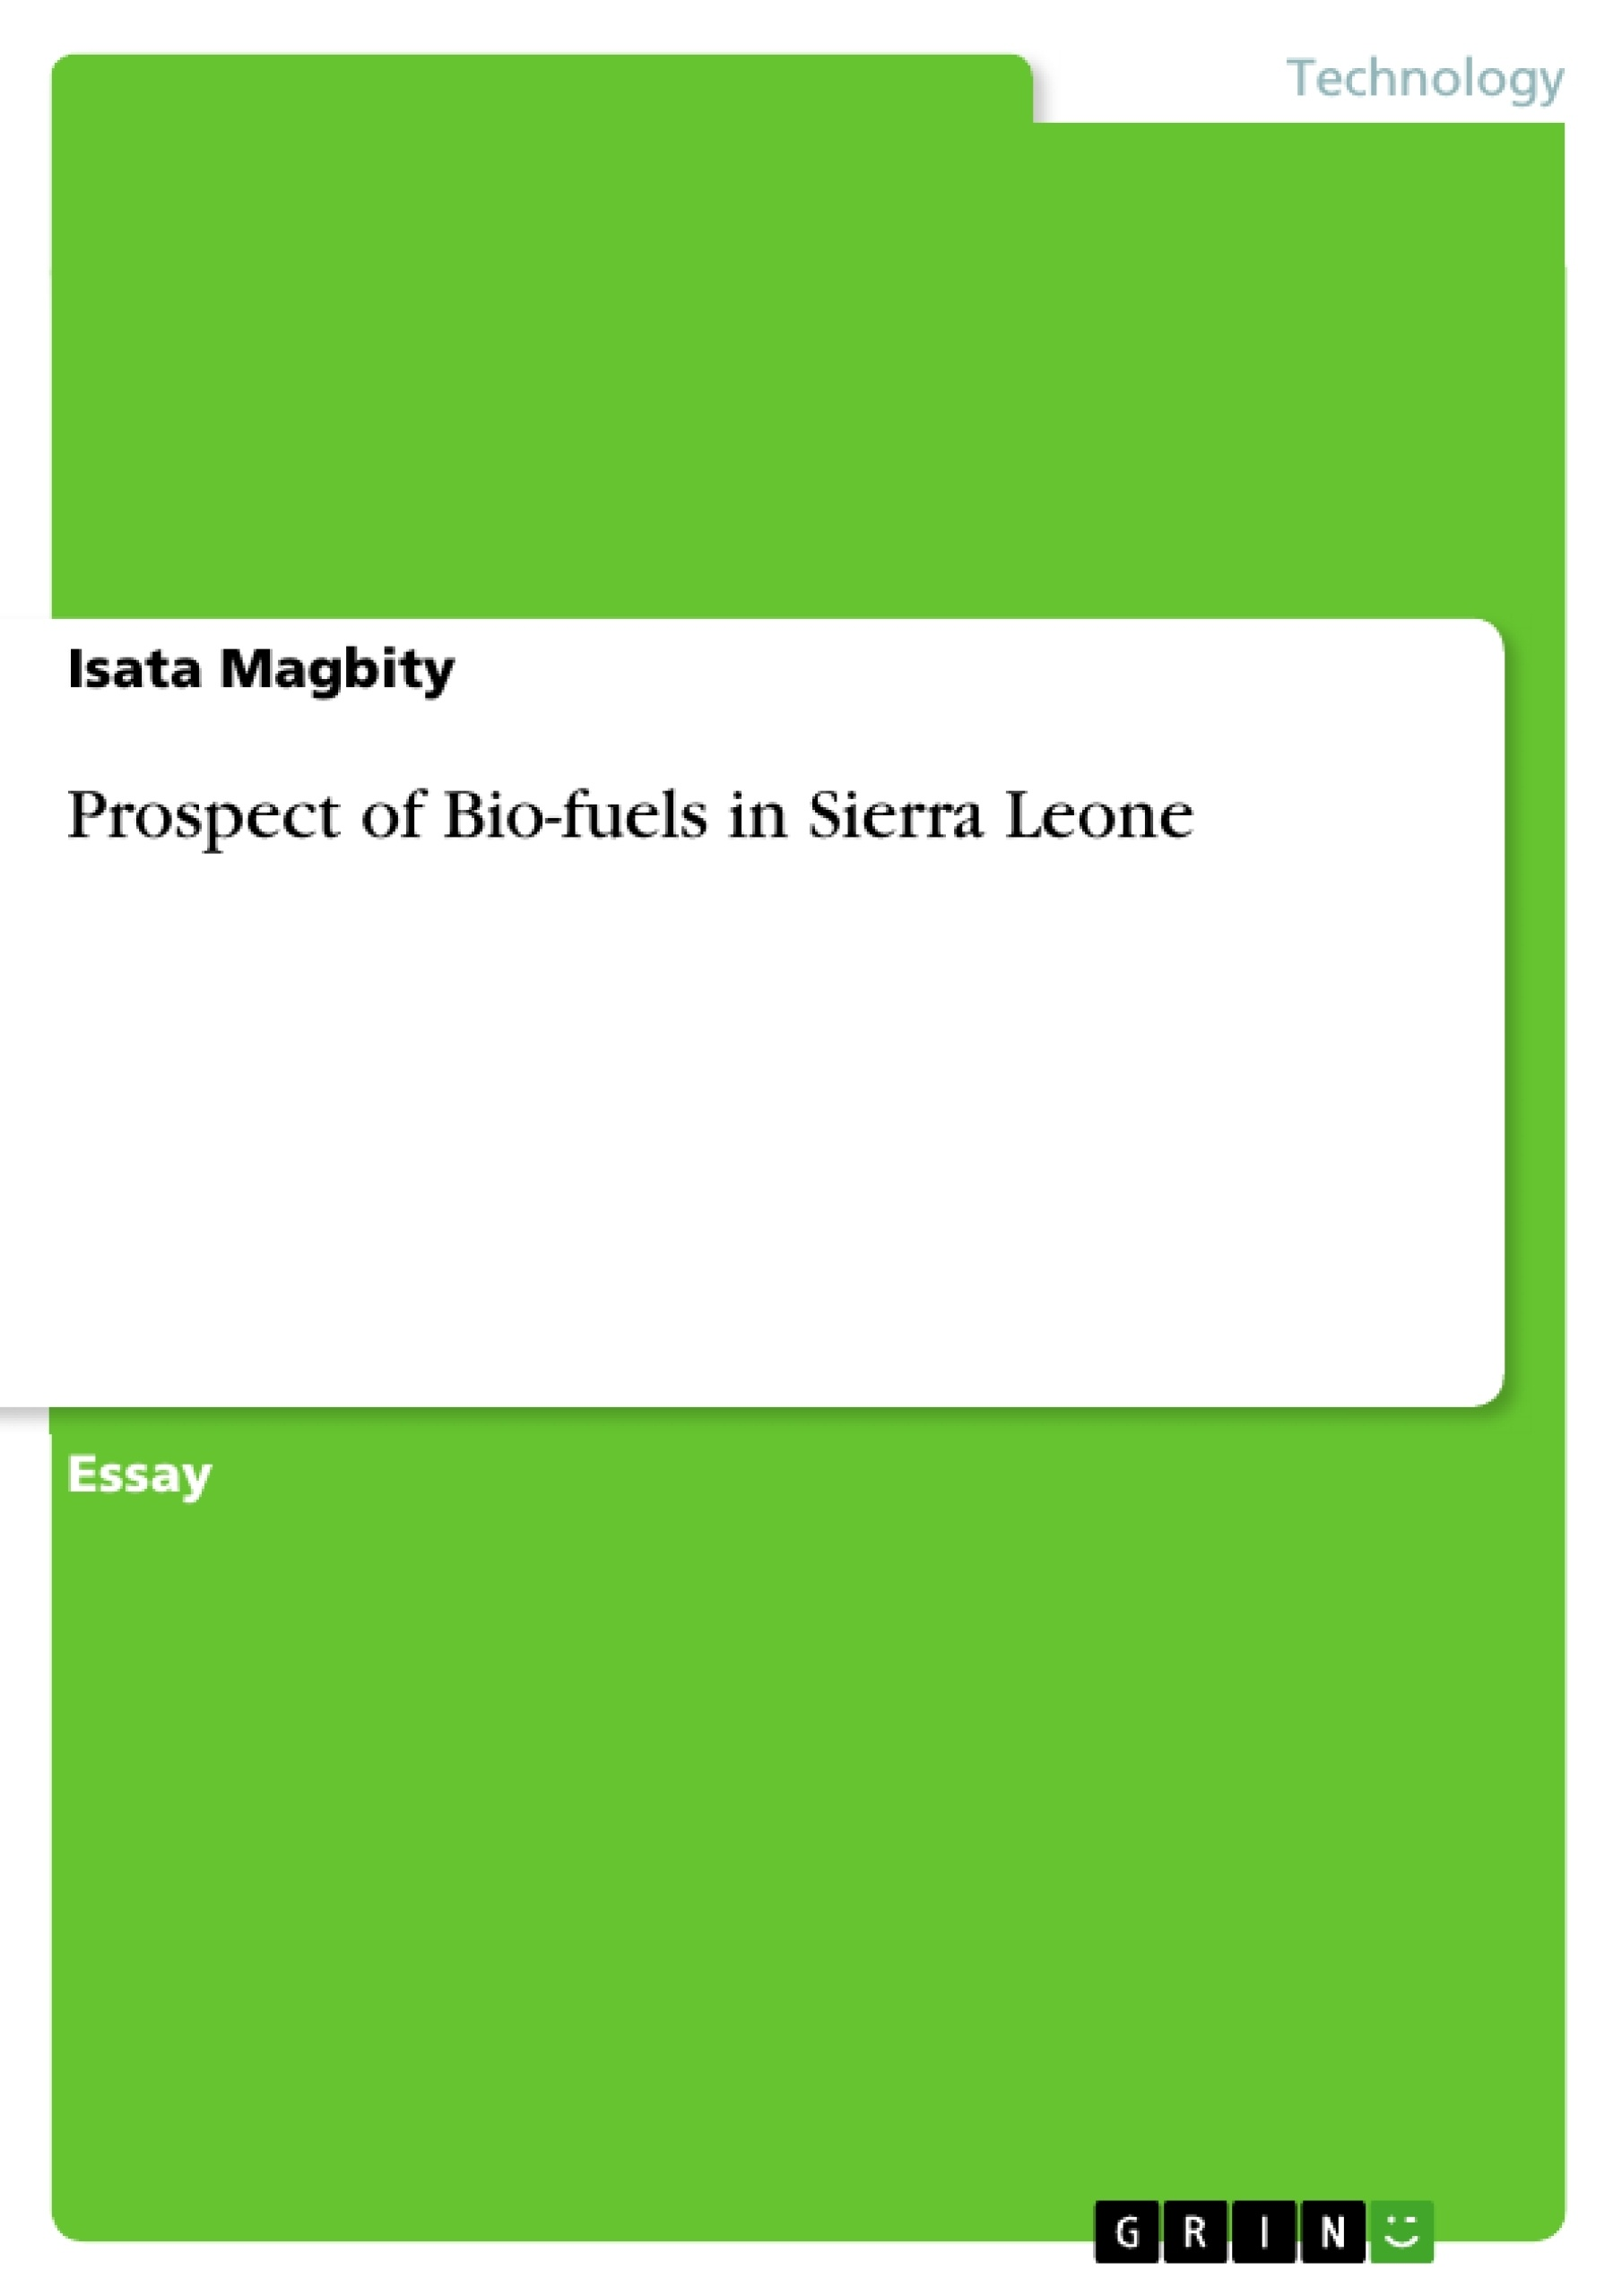 Title: Prospect of Bio-fuels in Sierra Leone